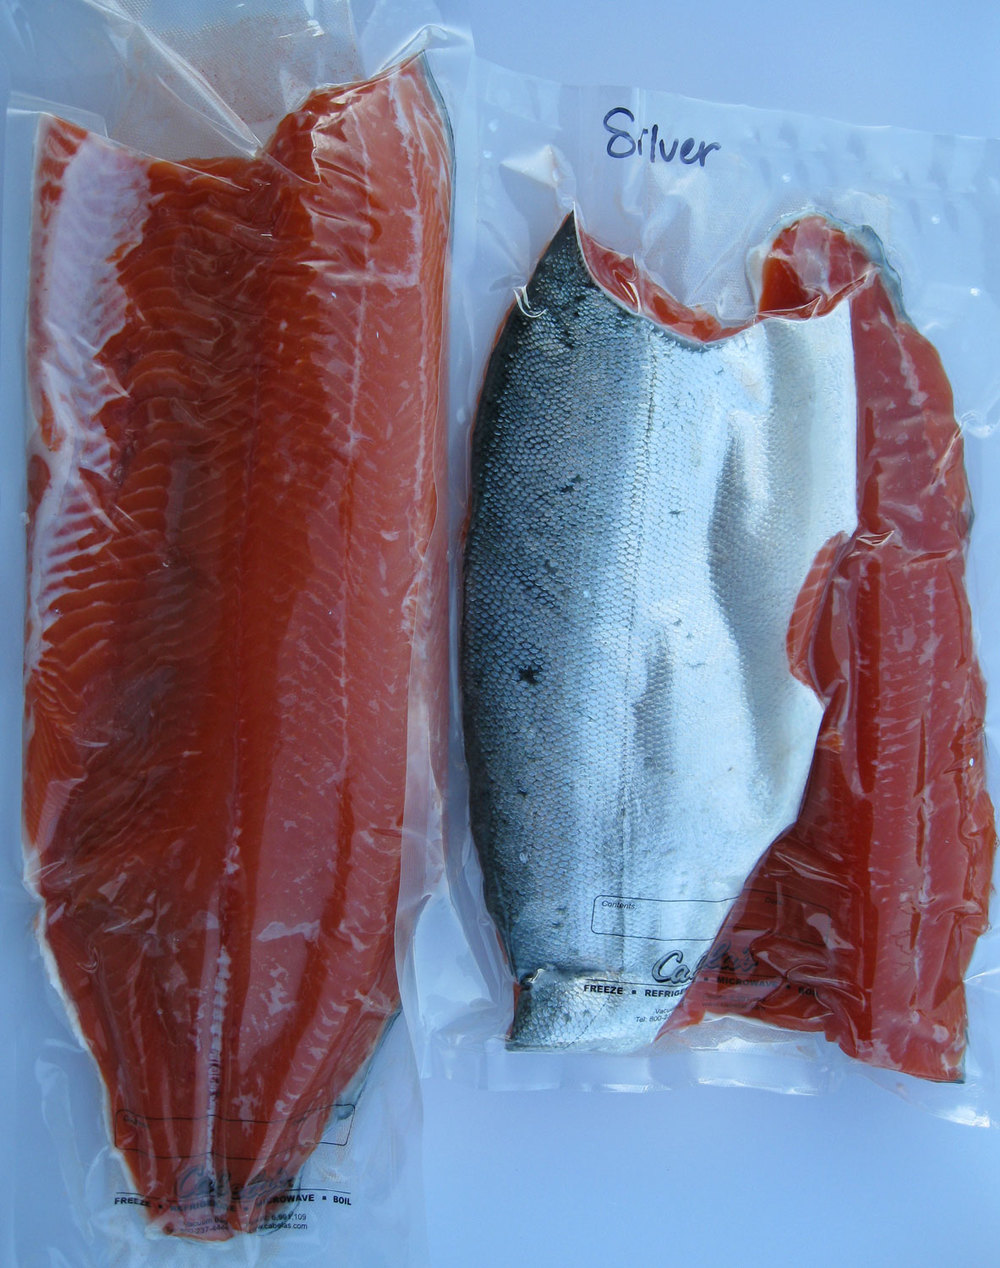 Silver salmon fillets vacuum packed for freezing.